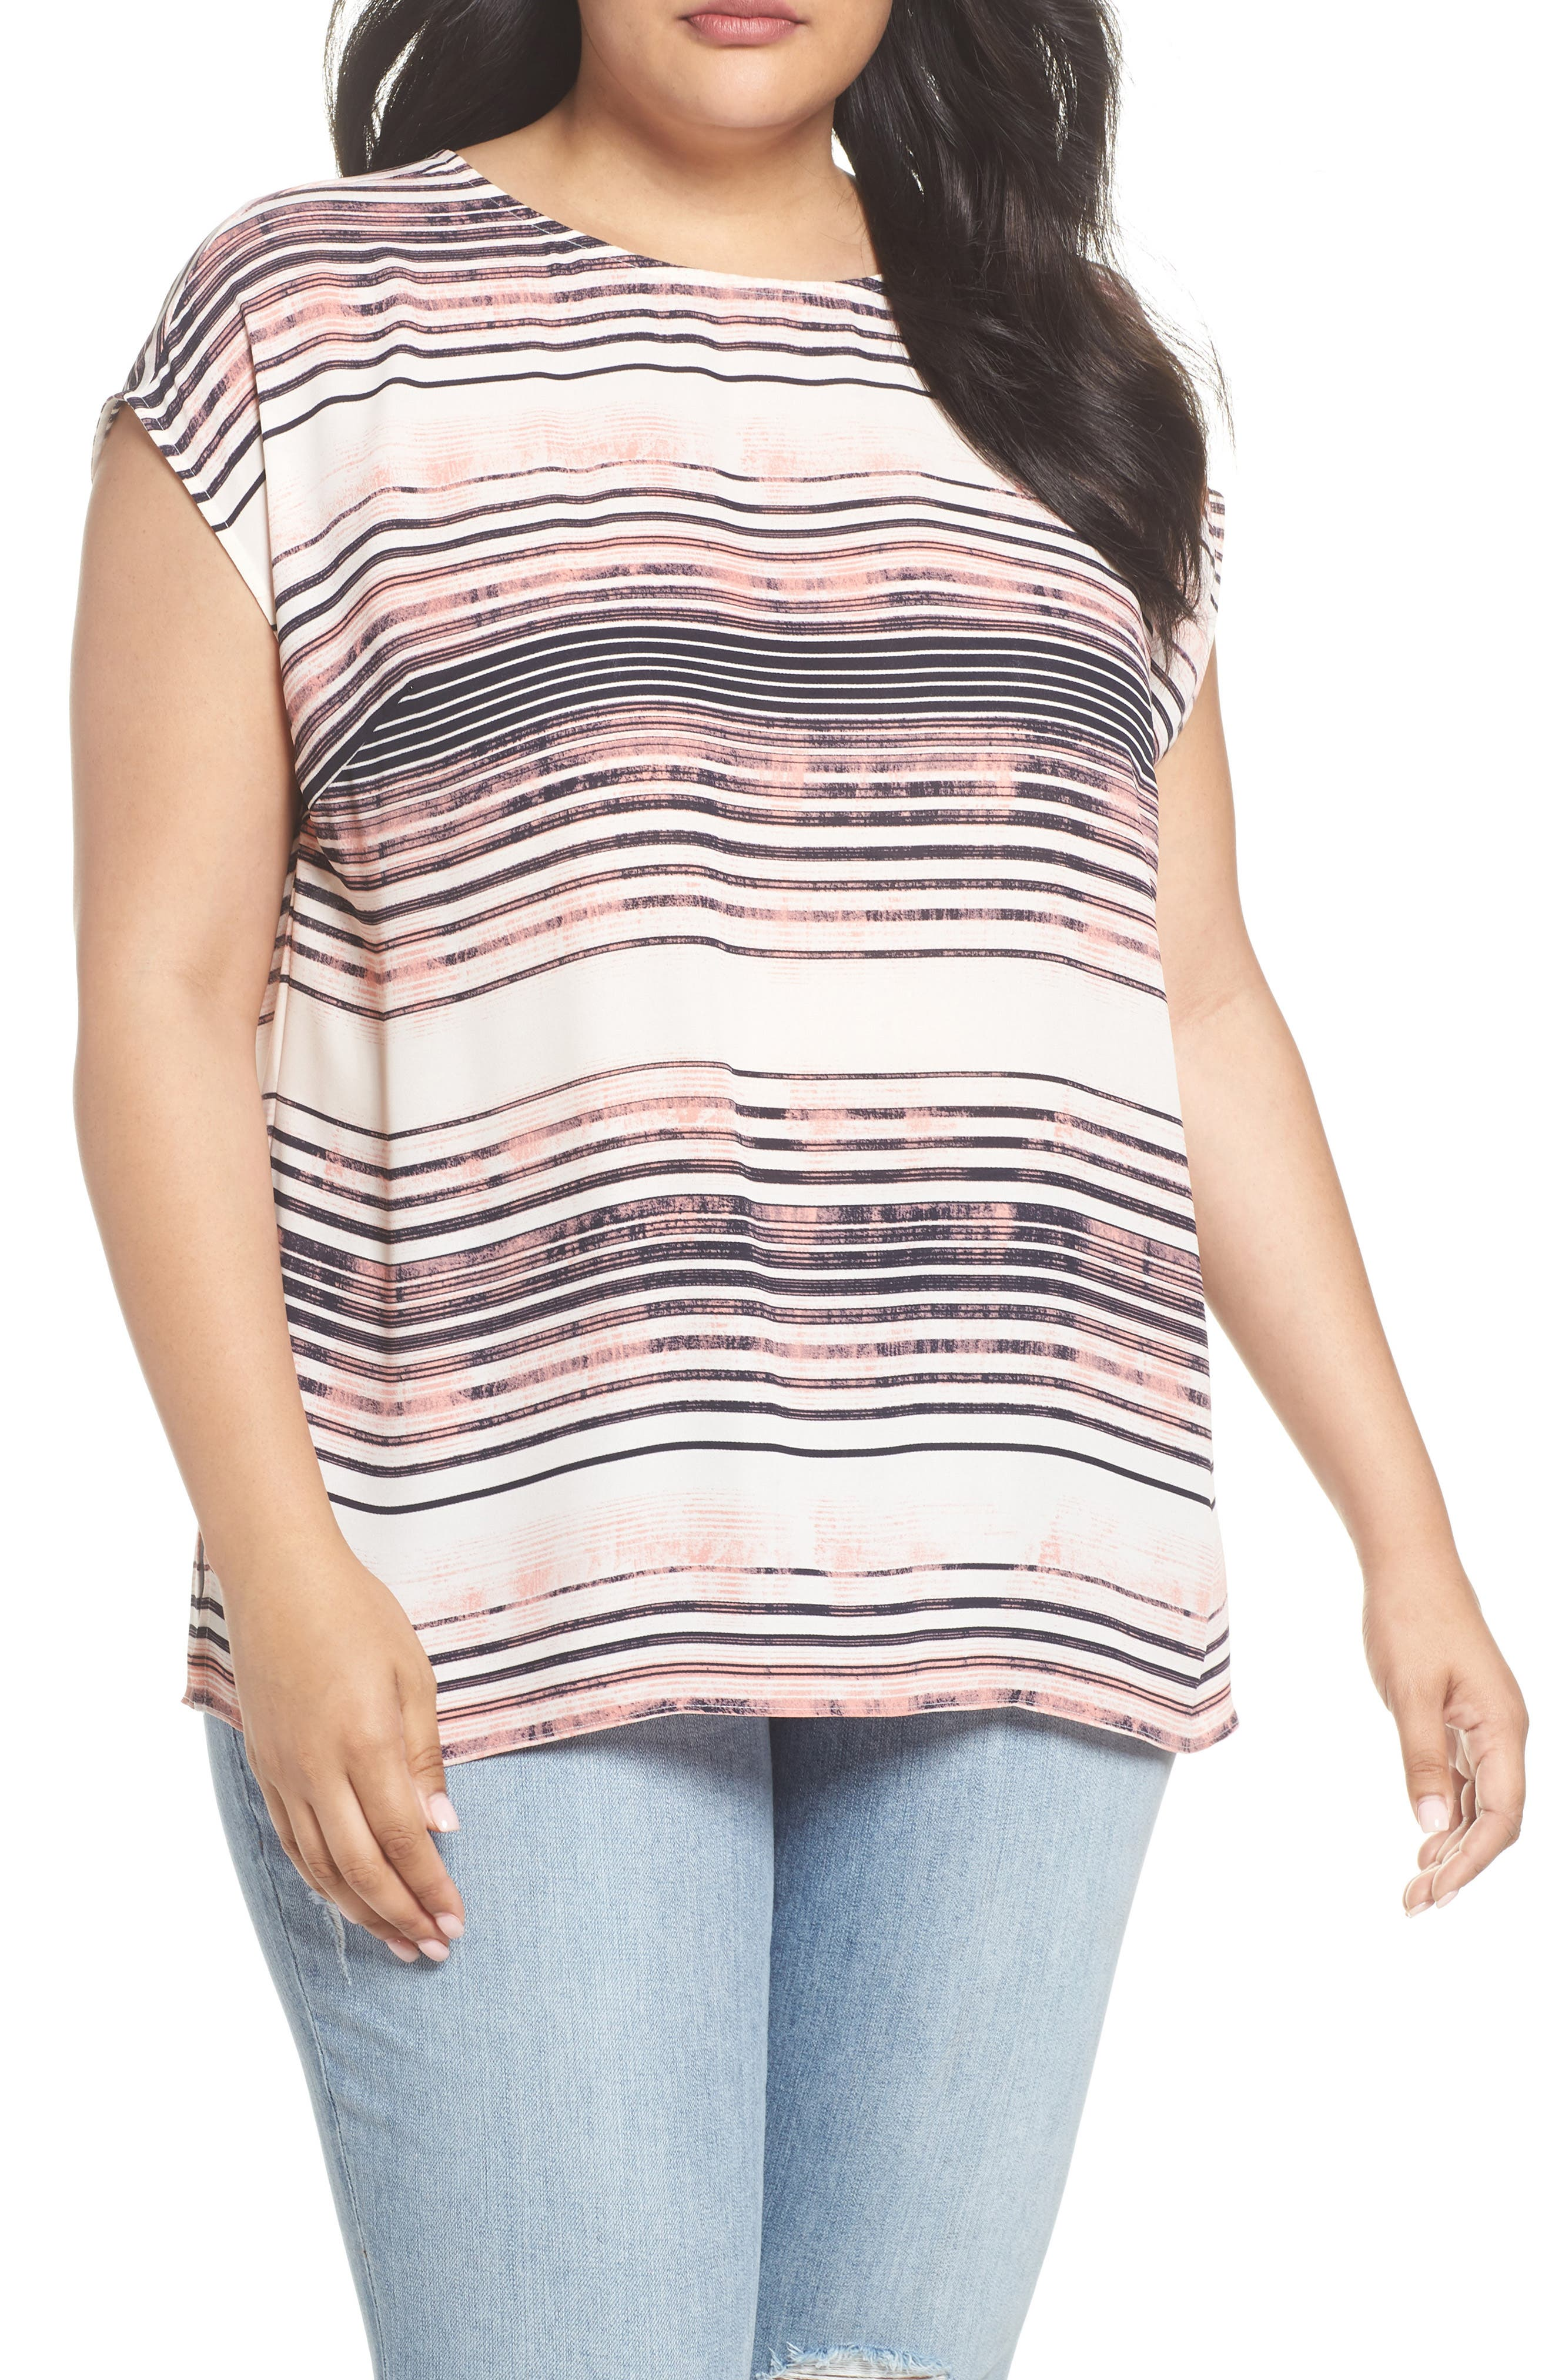 Ancient Muses Stripe Top,                         Main,                         color, Rich Cream